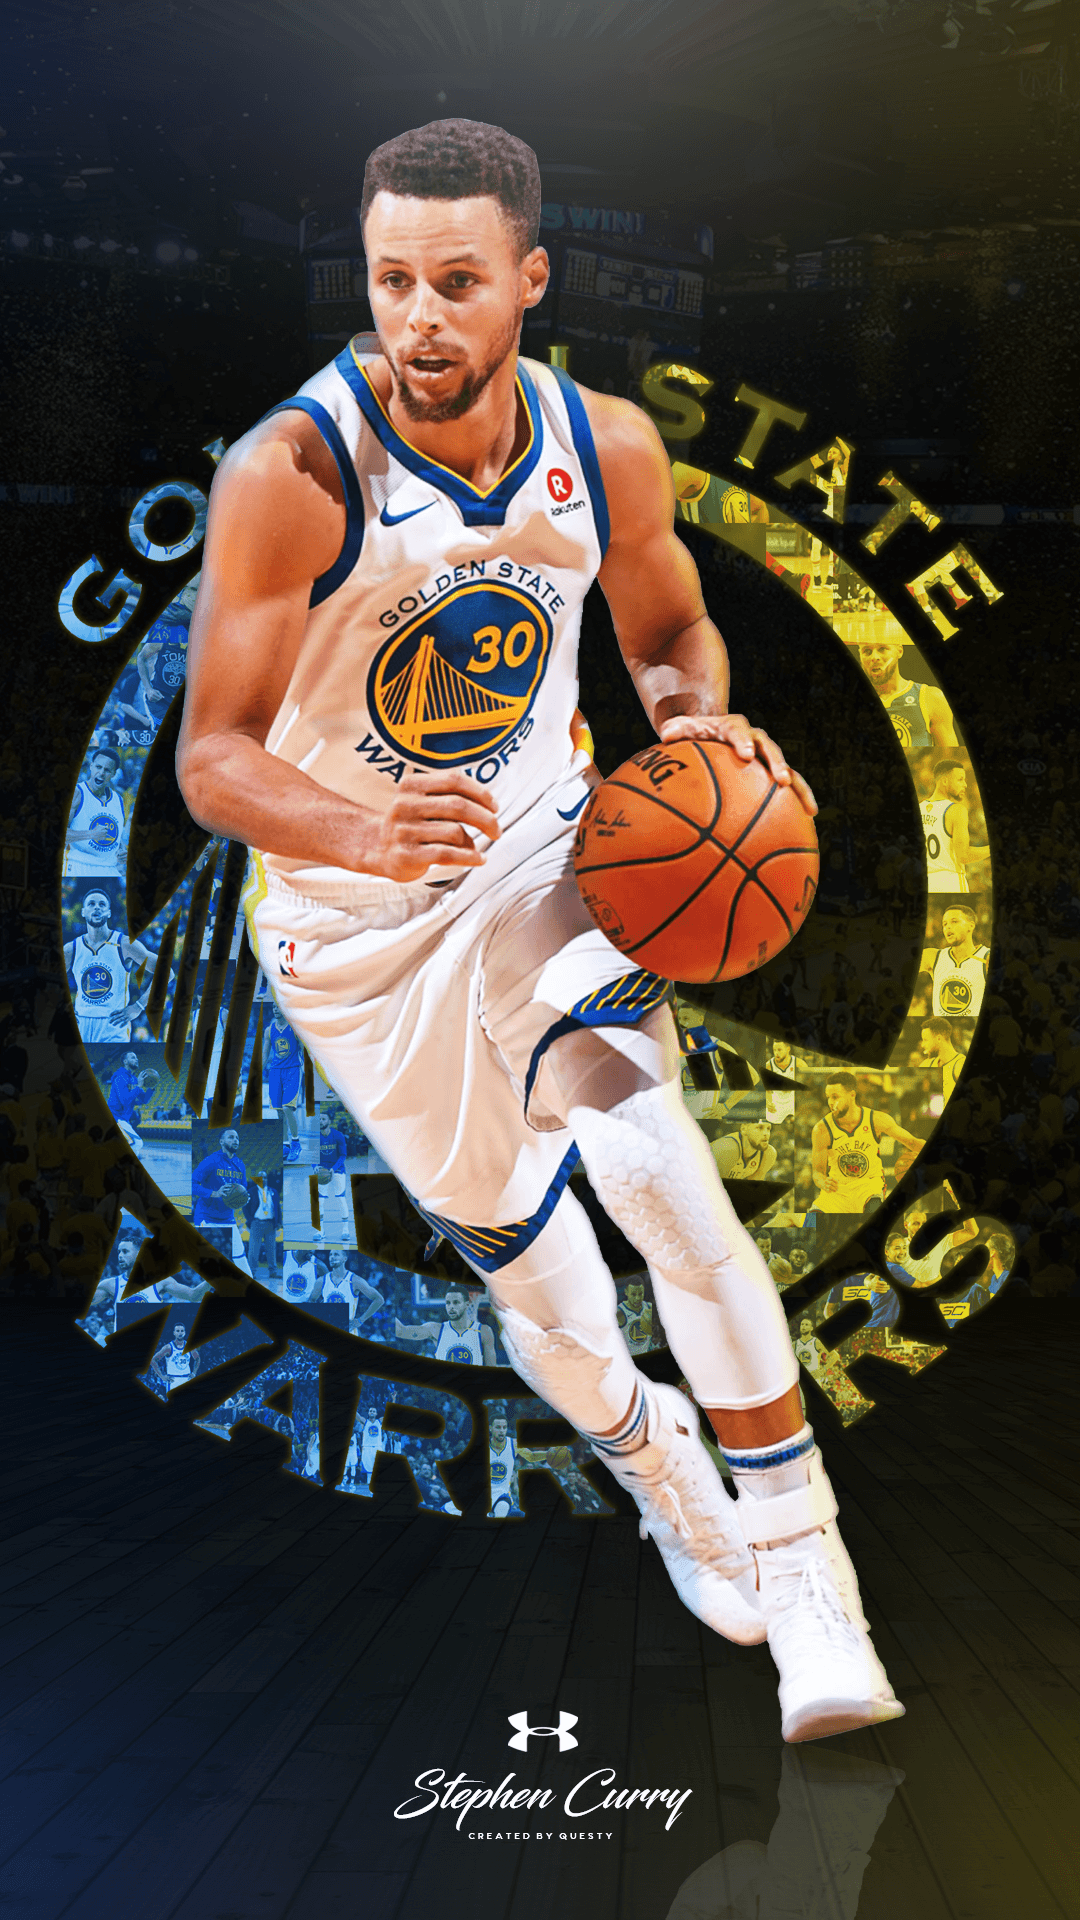 Stephen Curry 2021 Wallpapers - Wallpaper Cave